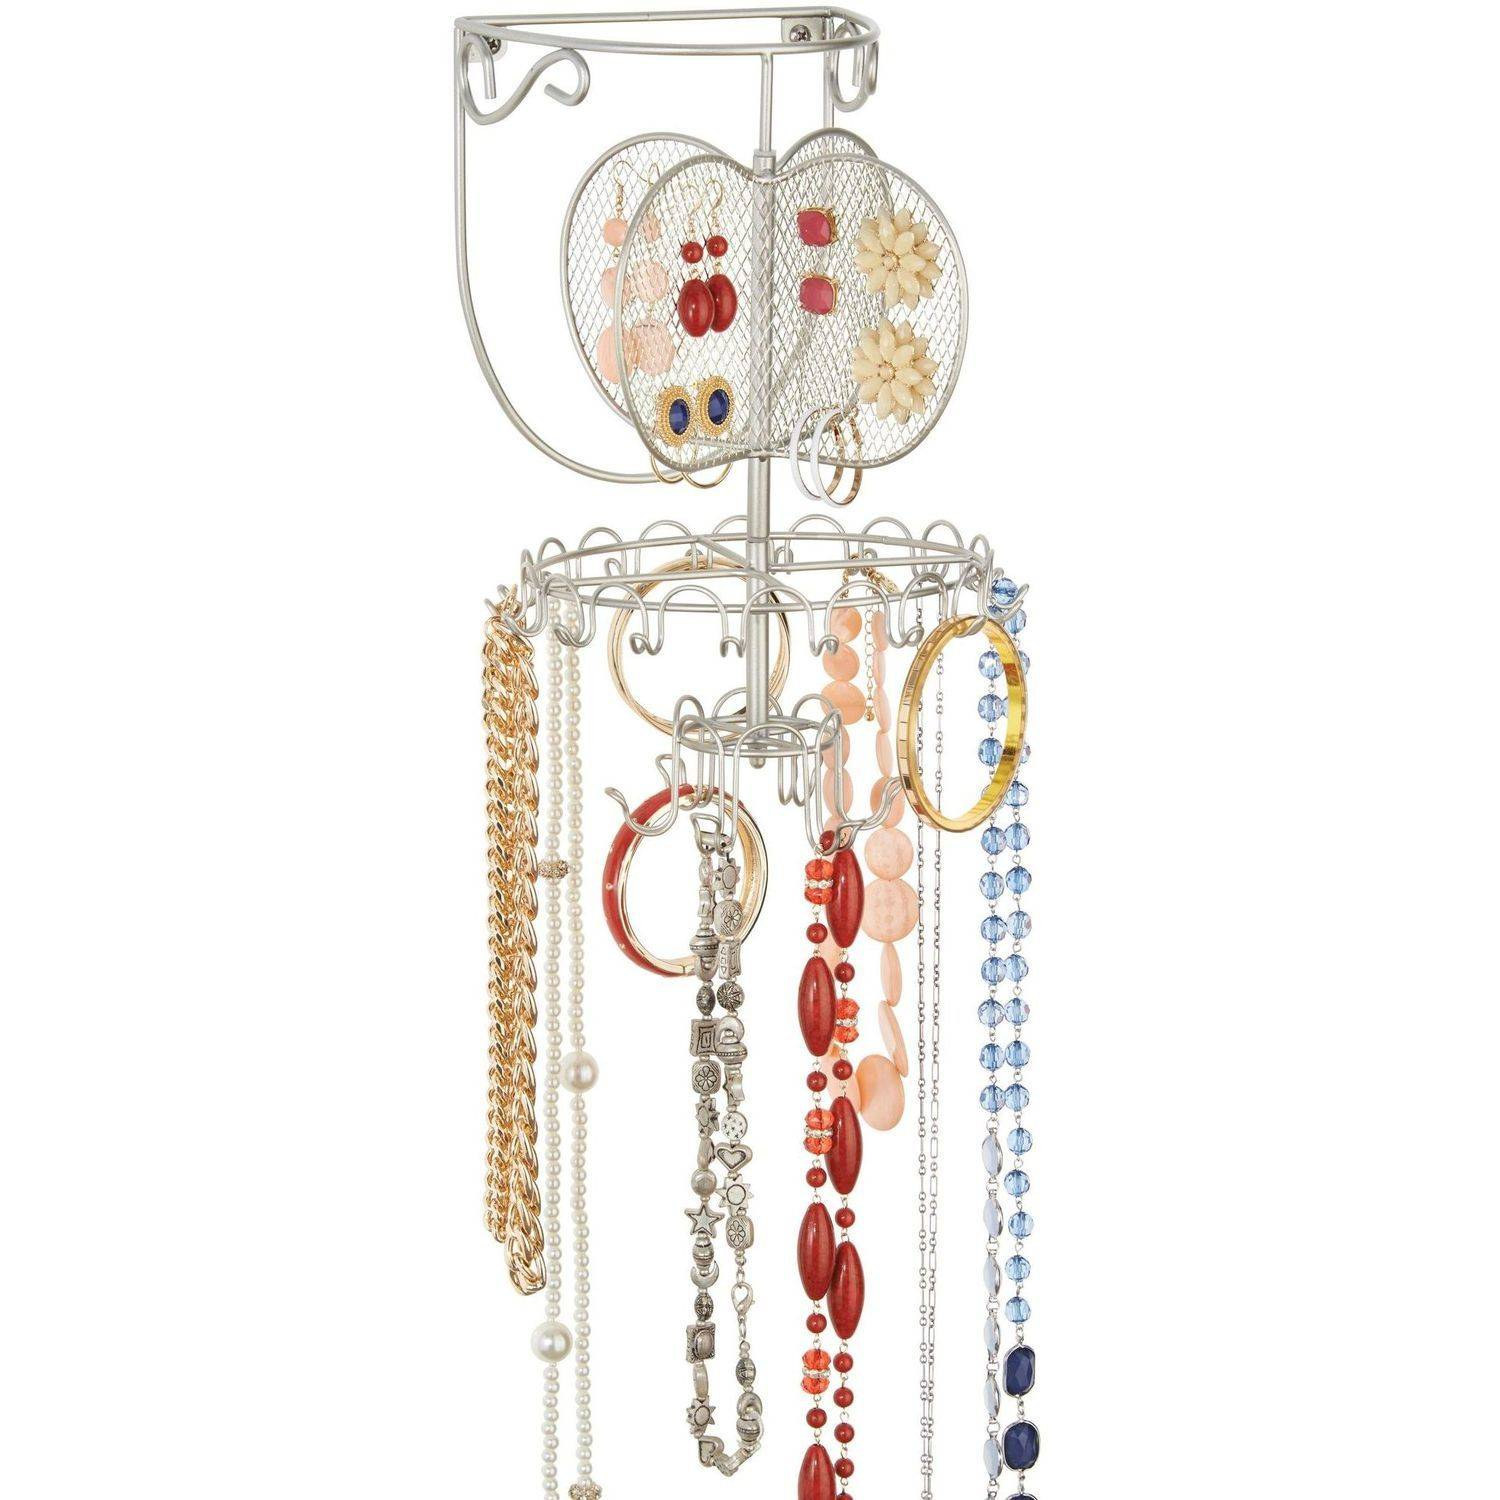 Classico Spinning Fashion Jewelry Organizer Wall Mount, Satin